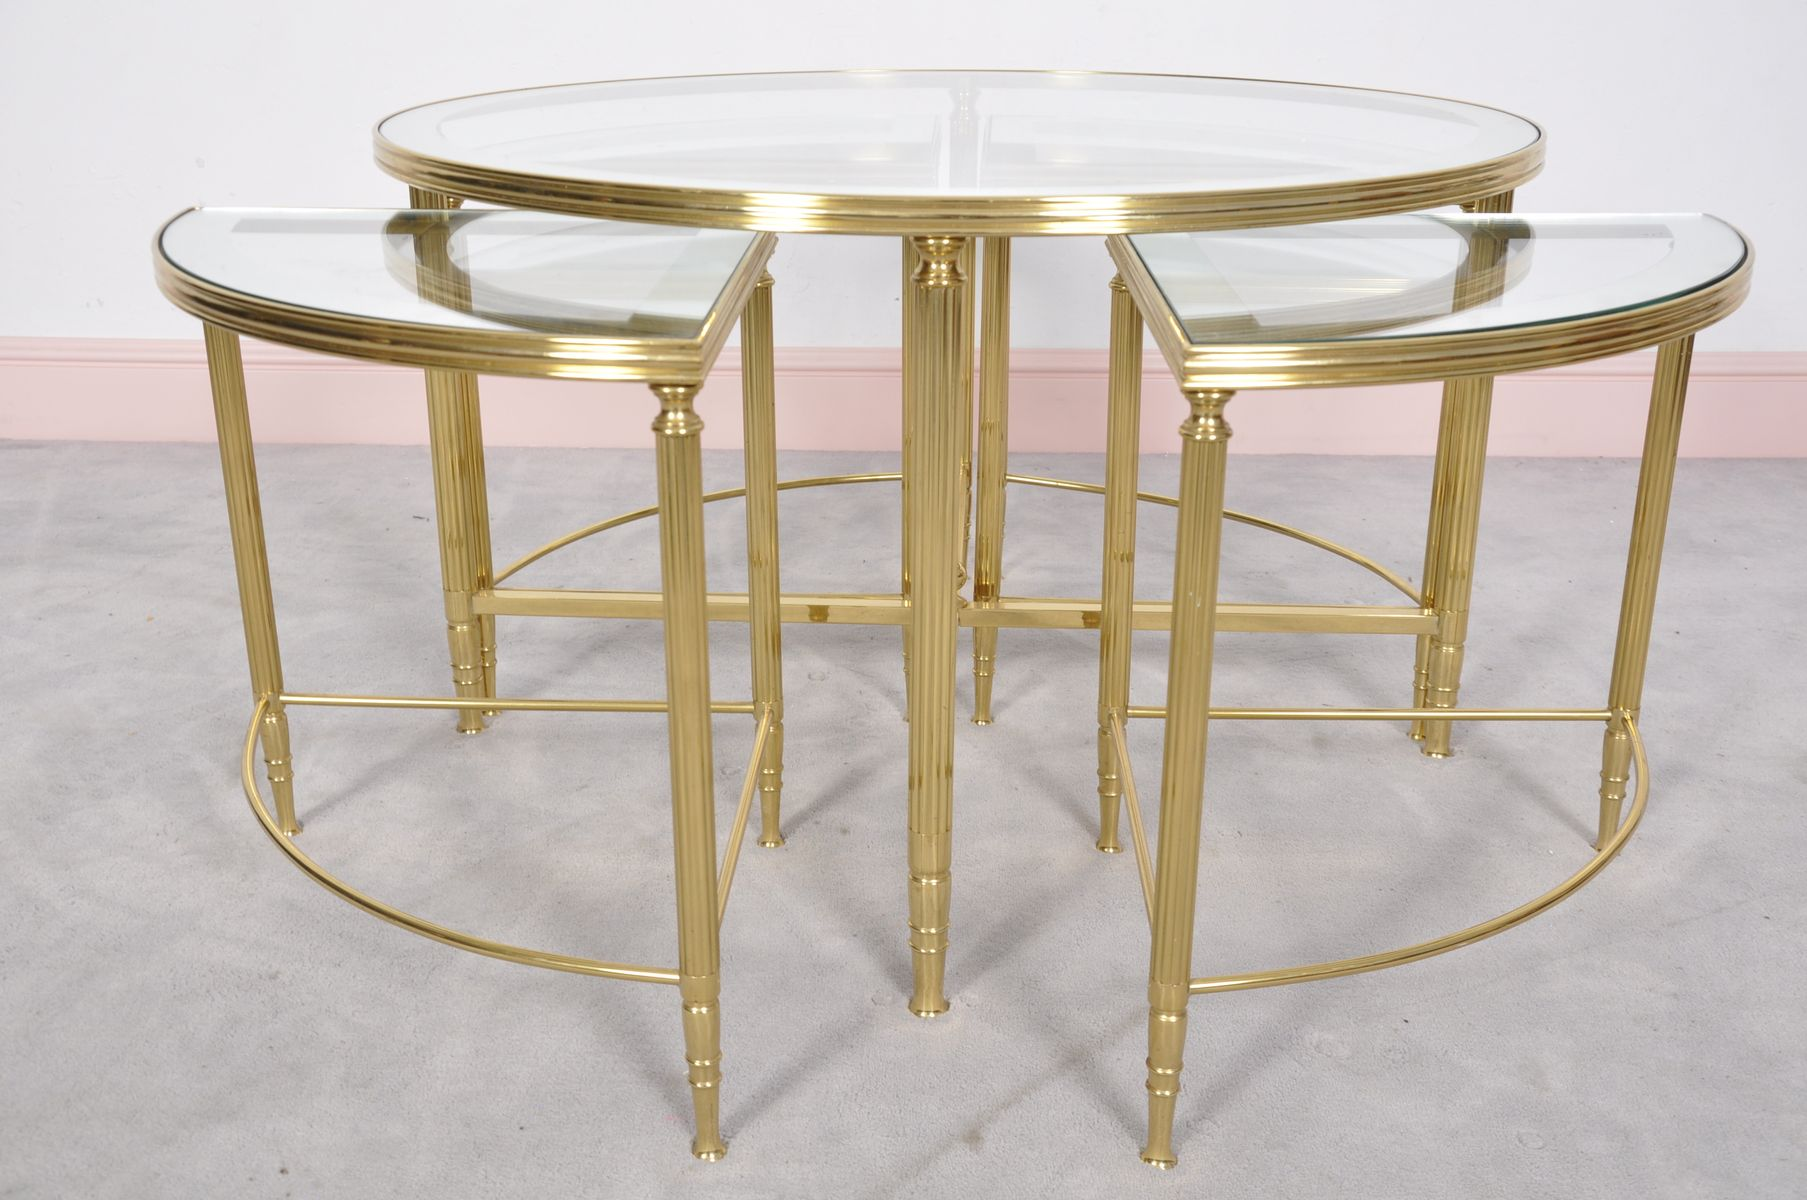 Five Piece Hollywood Regency Cocktail Table by Maison Jansen